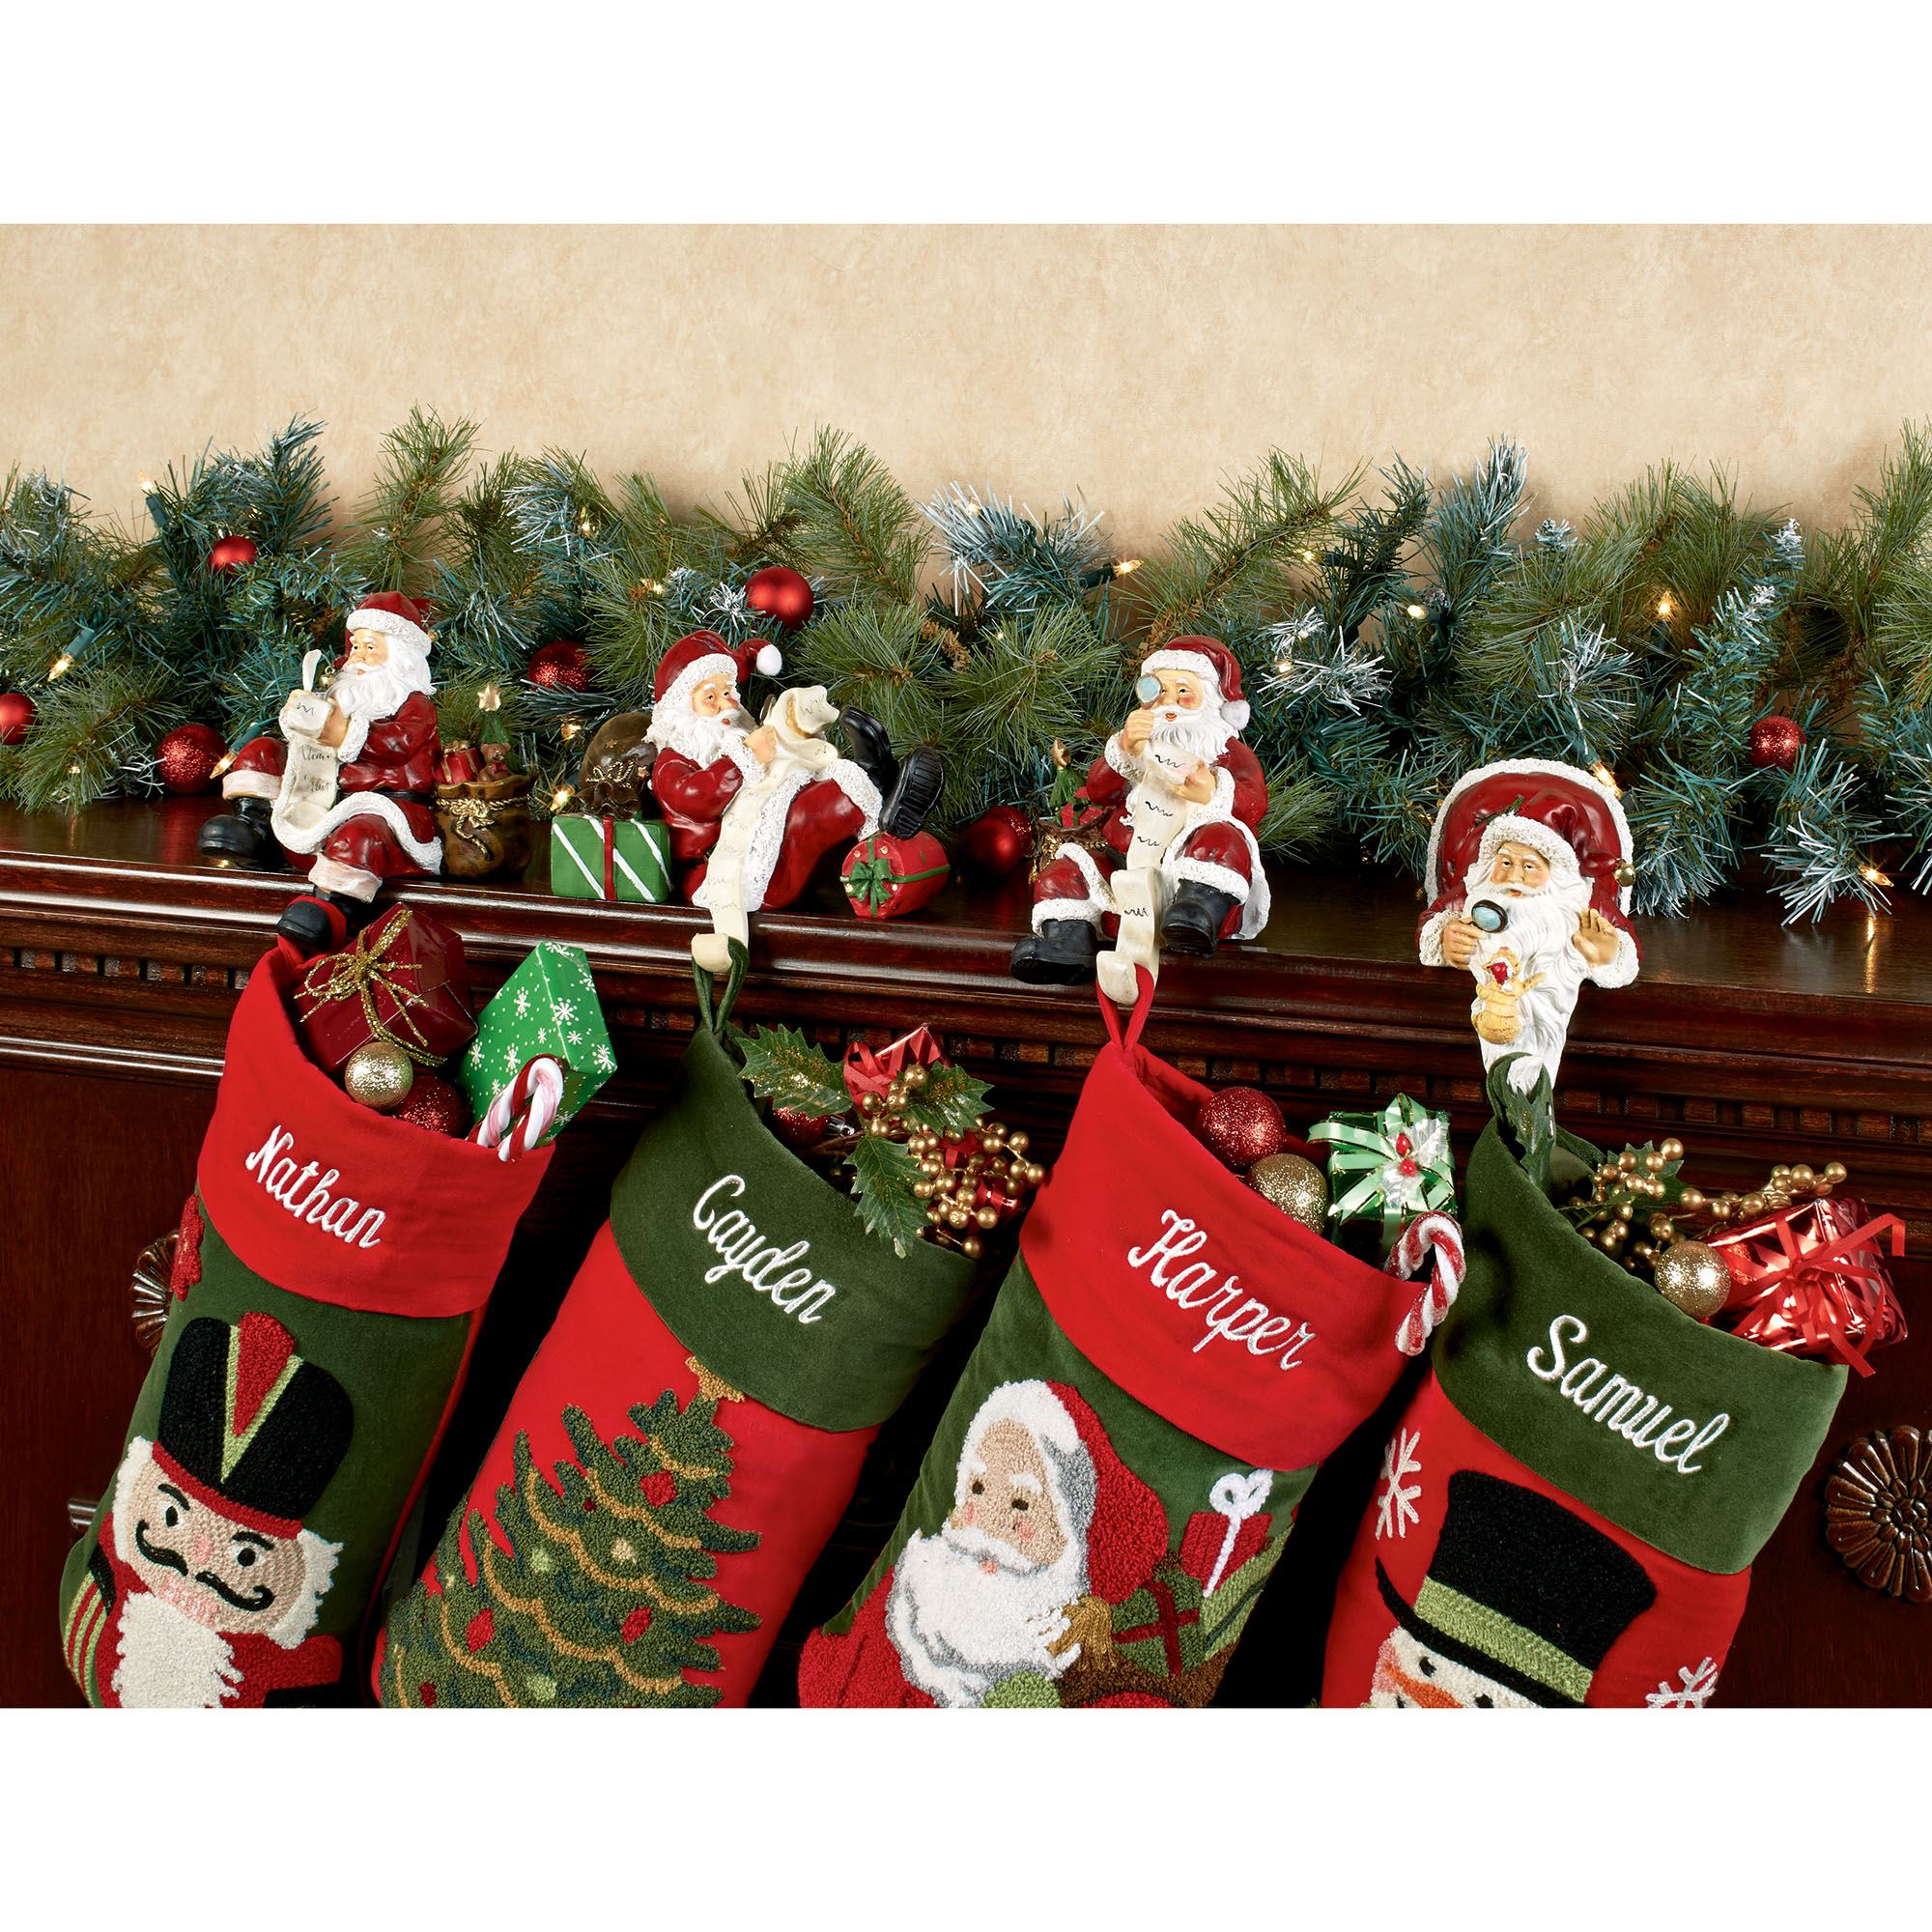 checking twice stocking holder set touch to zoom - Christmas Stocking Holders For Fireplace